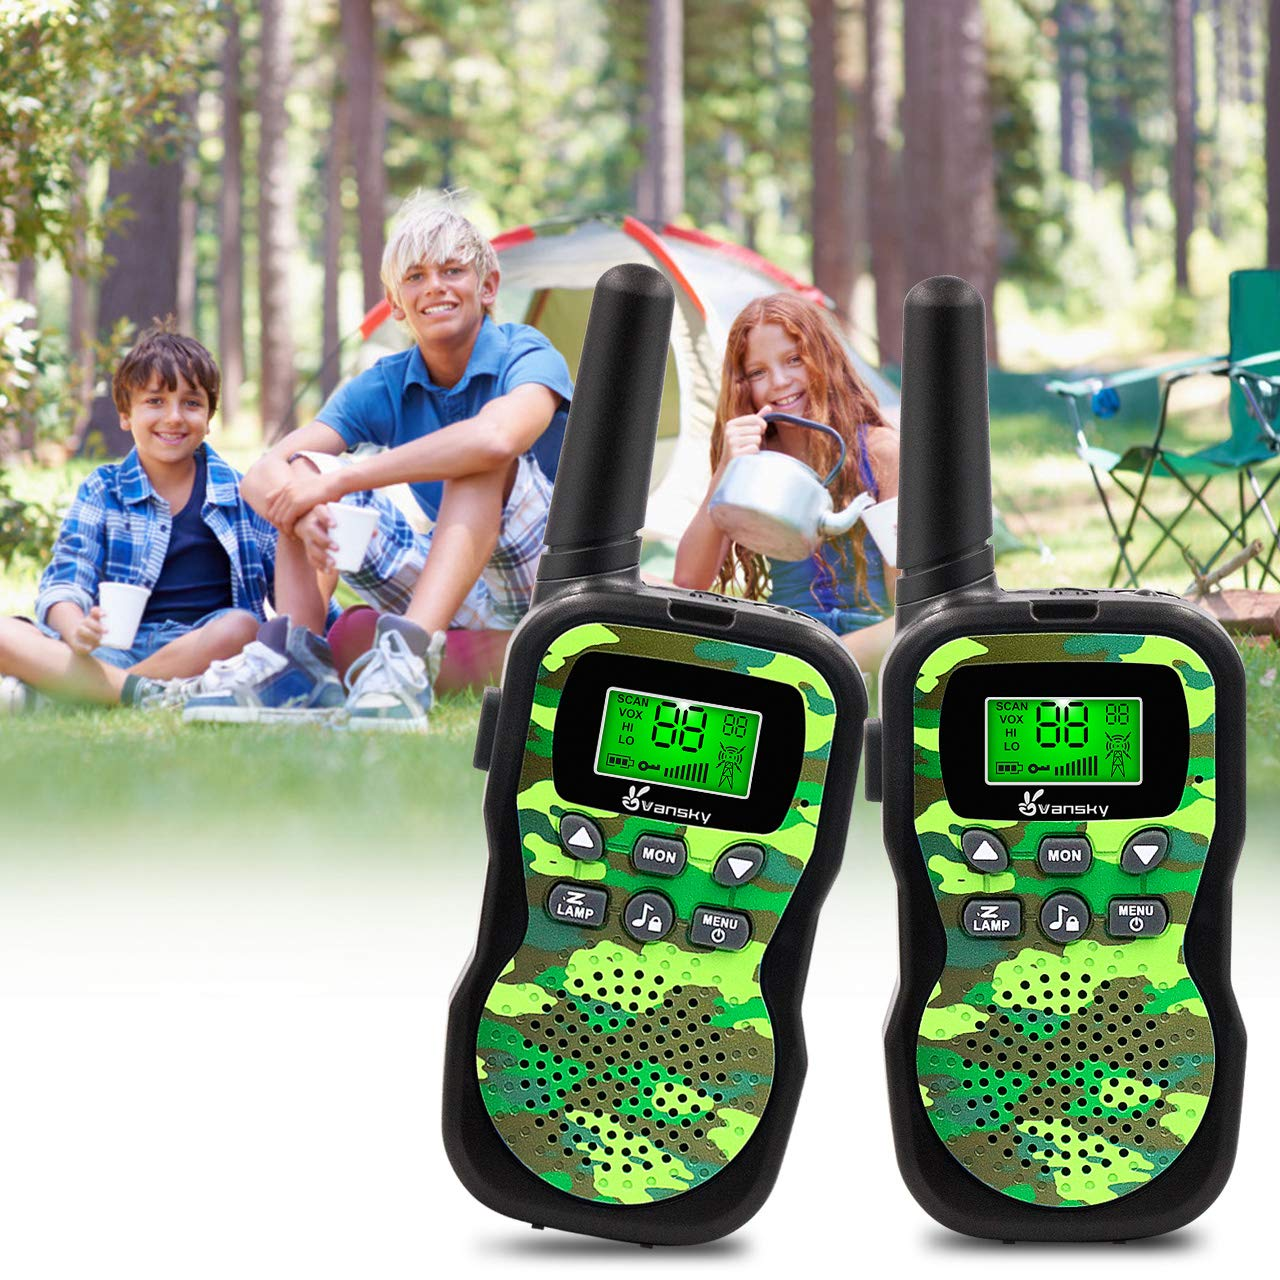 Vansky Walkie Talkies for Kids, Kids Toys 4 5 6 7 8 Age Boy Girl Long Range 22 Channel Built-in Flashlight 2 Way Radio Best Gifts Games, Outdoor Adventure, Camping, Hiking (Camo Green) by Vansky (Image #5)